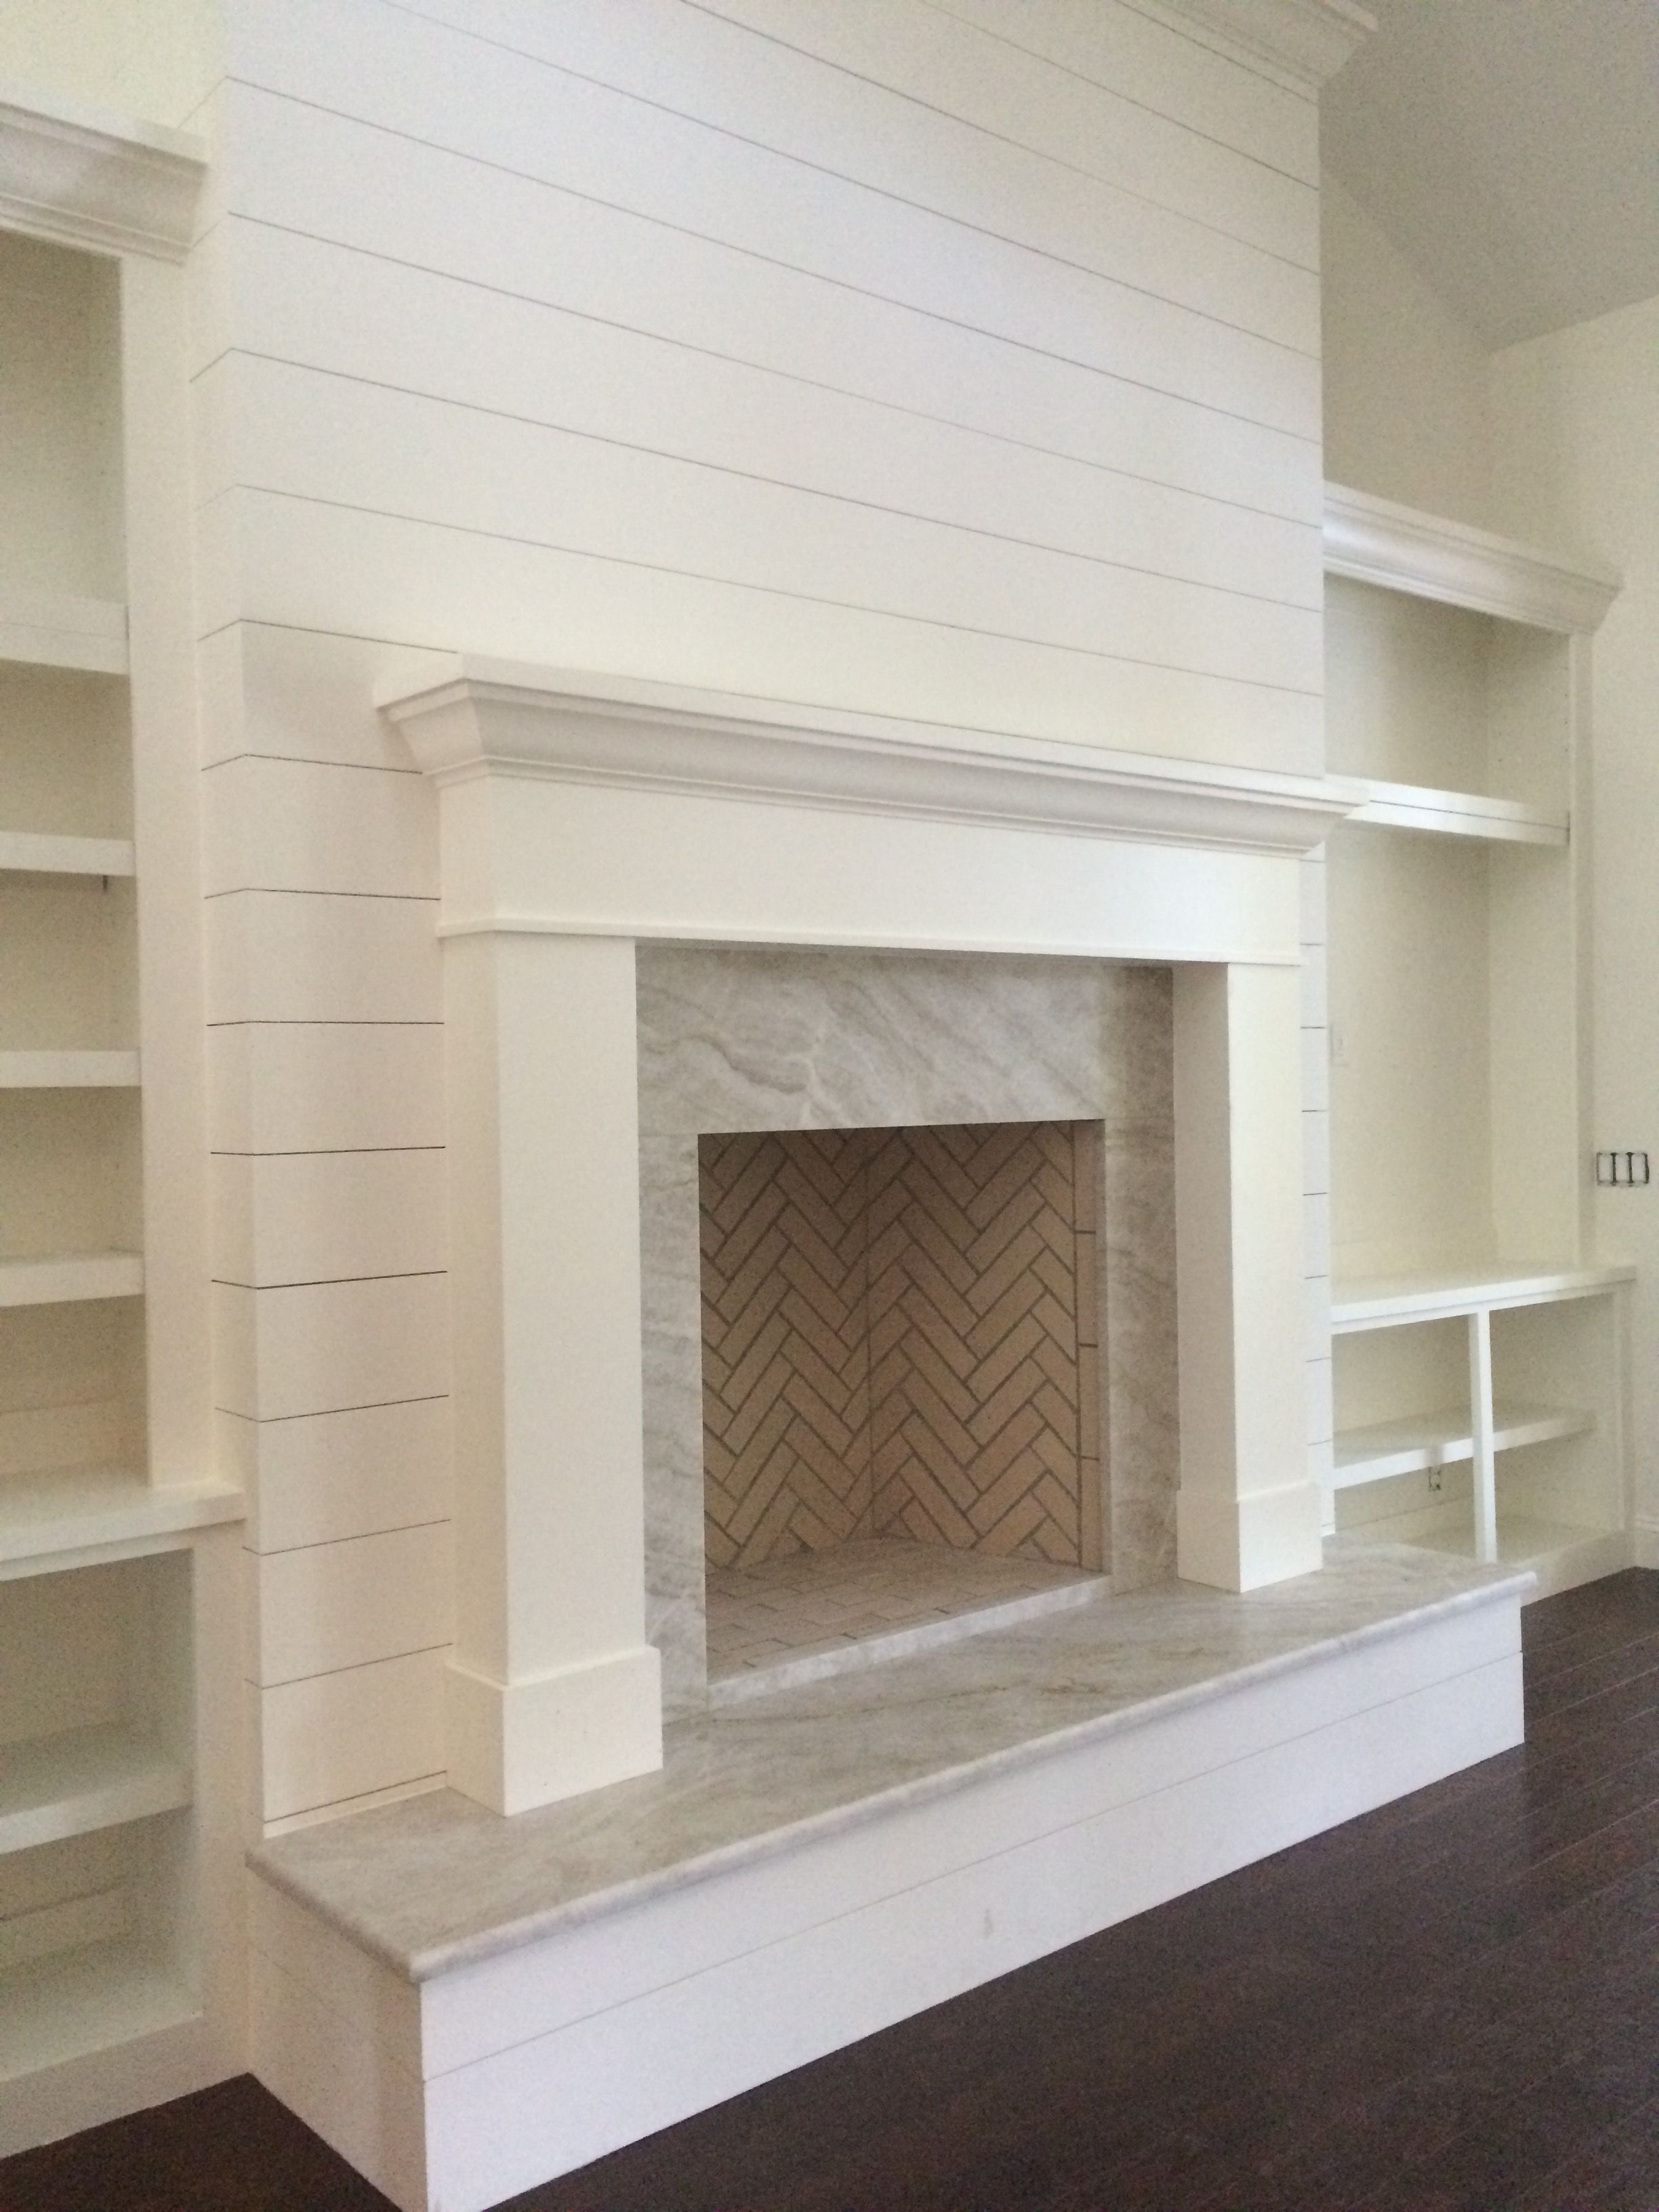 Marble Fireplaces Ideas Love This Fireplace Remodel Would Be So Pretty With A Wood Stove